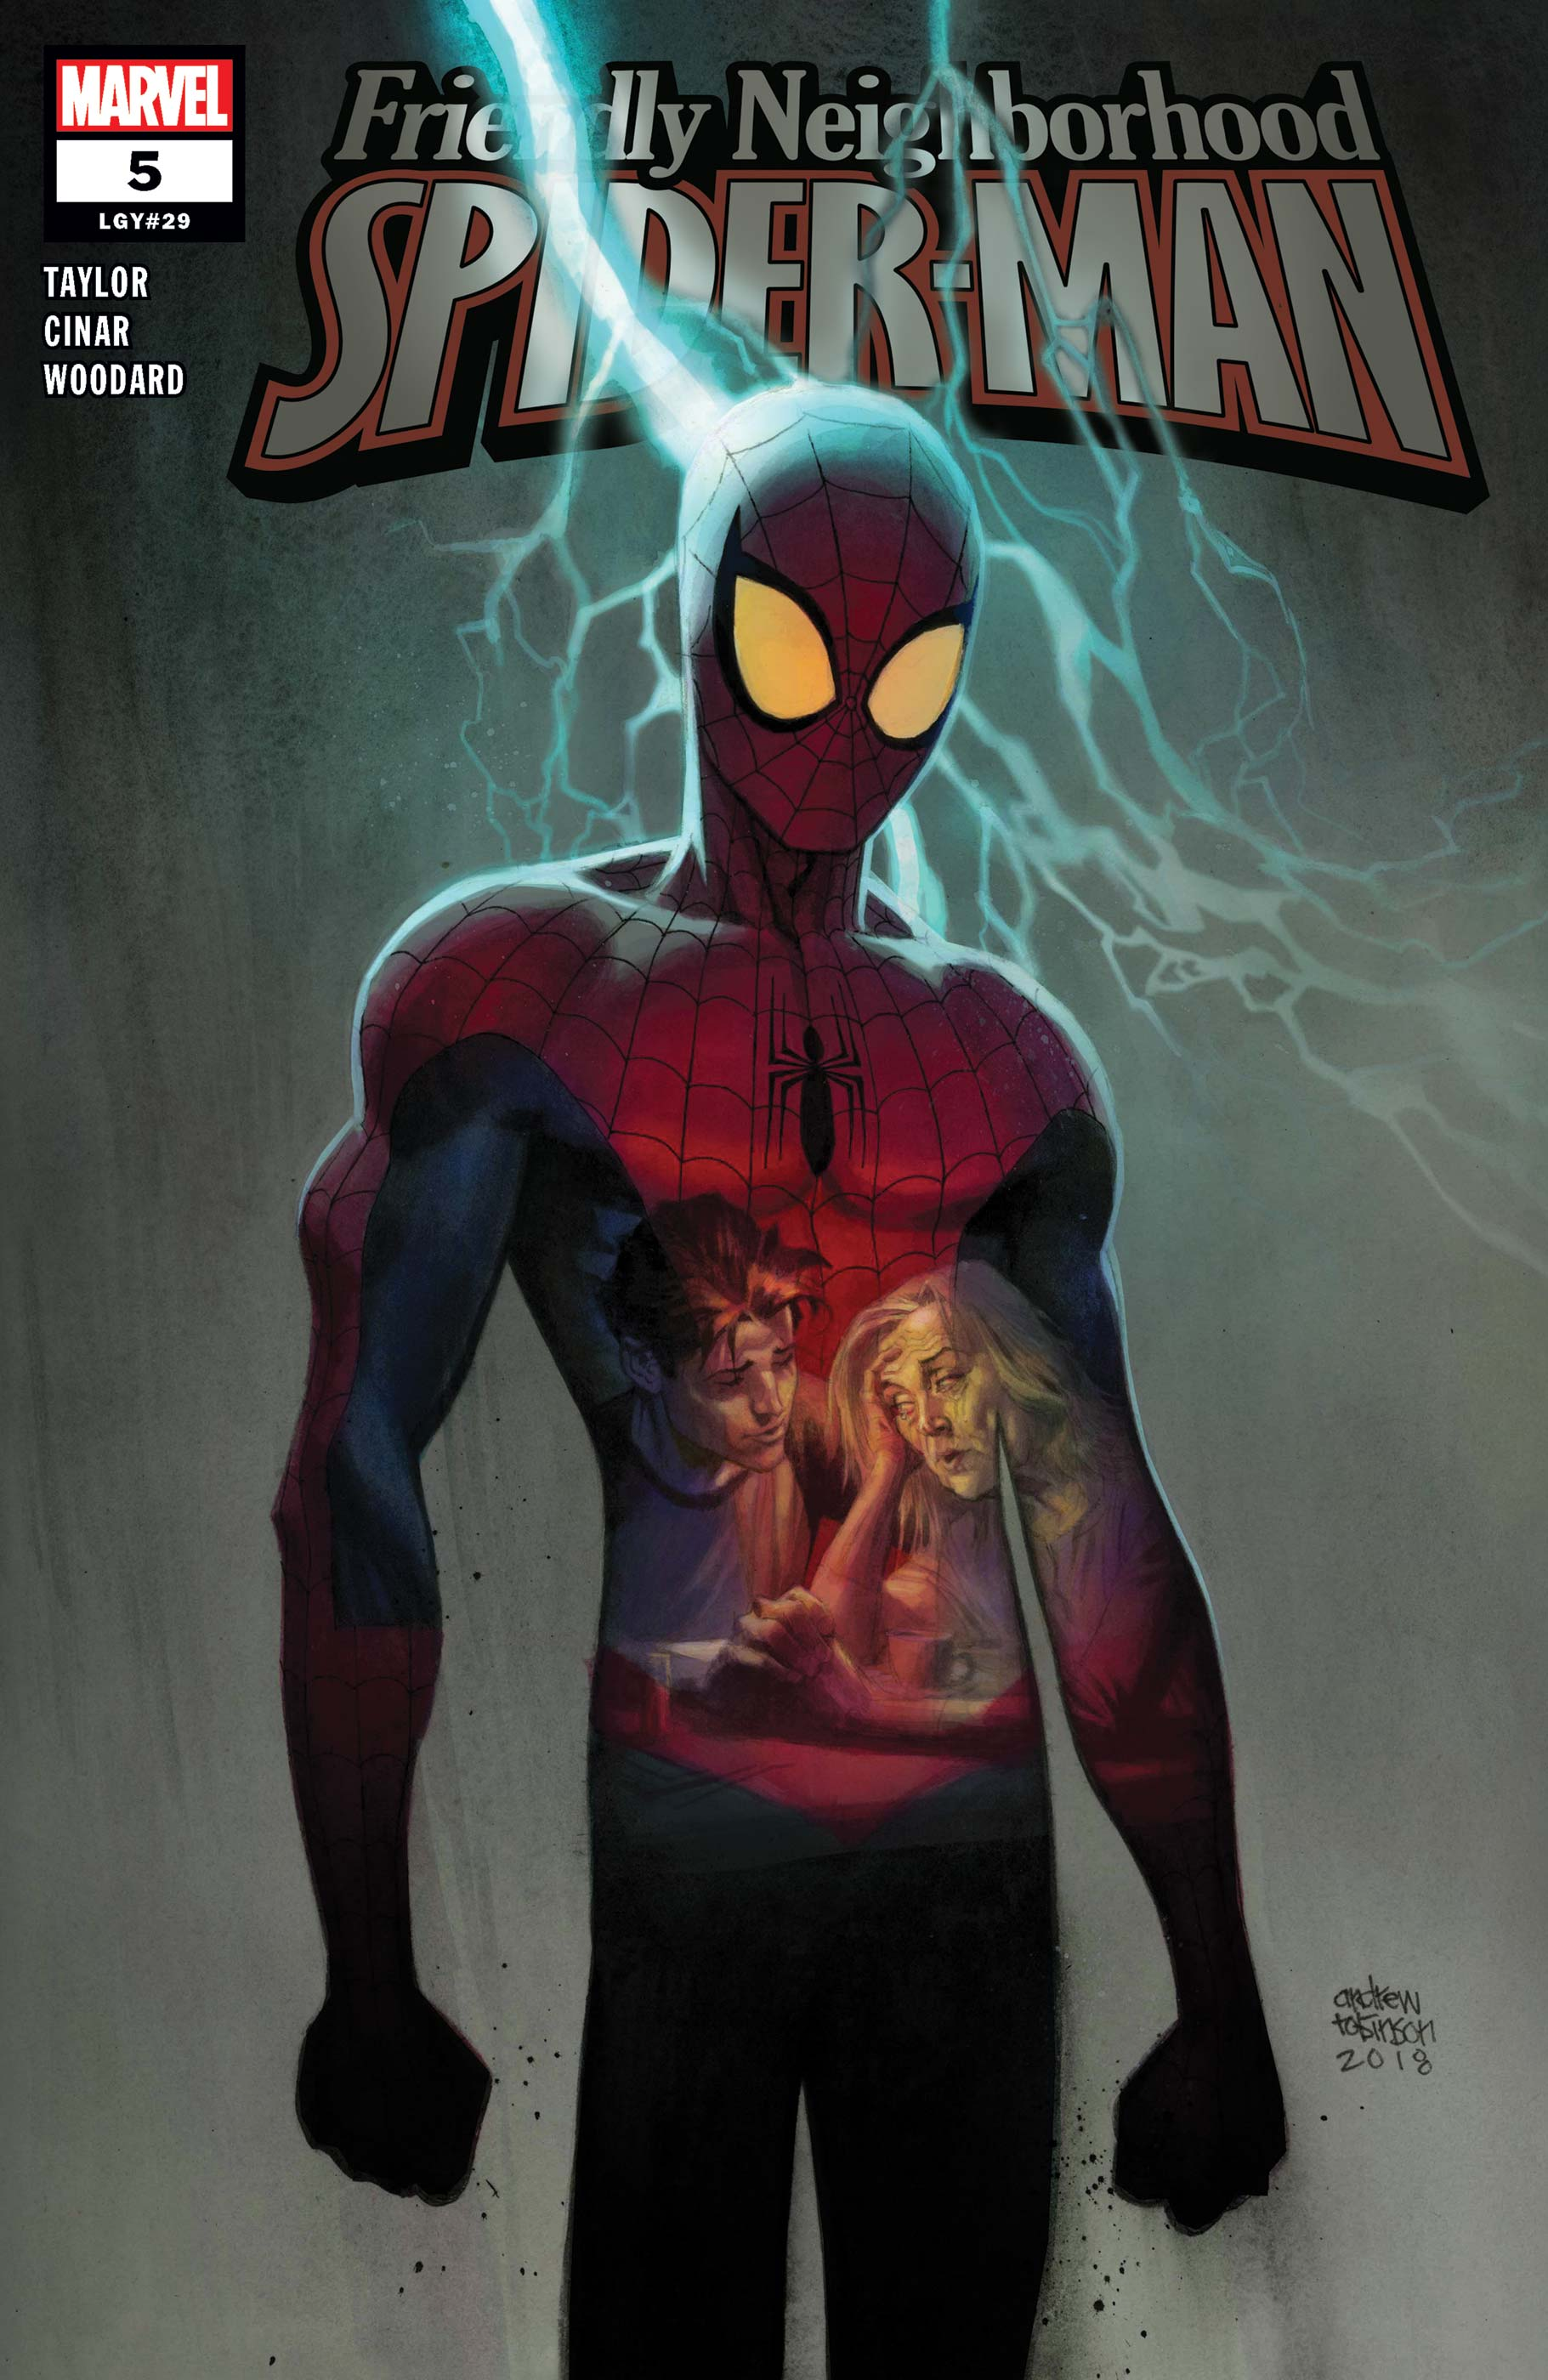 Friendly Neighborhood Spider-Man (2019) #5